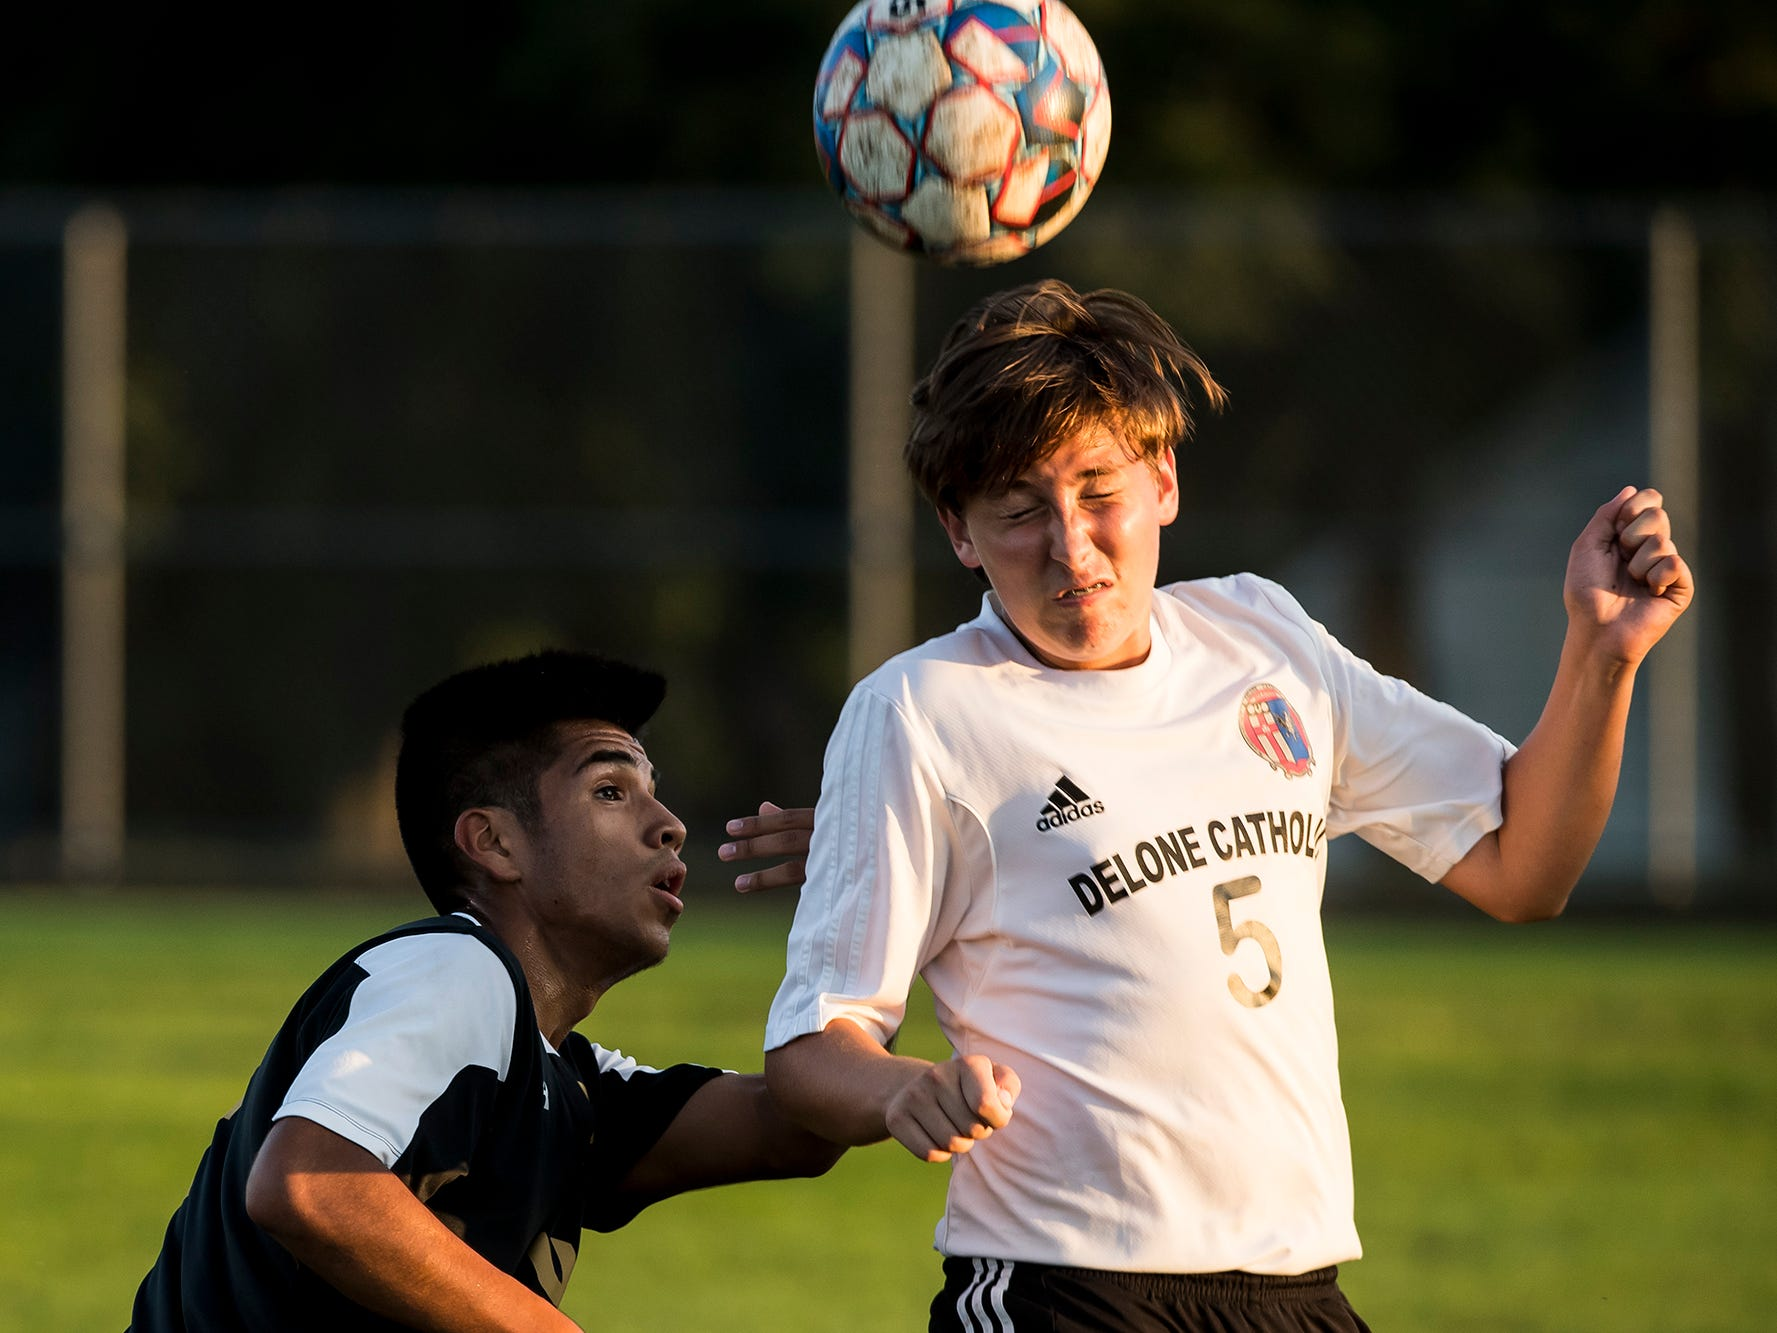 Delone Catholic's Andrew Gervasi hits a header during a game against Biglerville on Wednesday, October 3, 2018. The Squires fell 3-0.